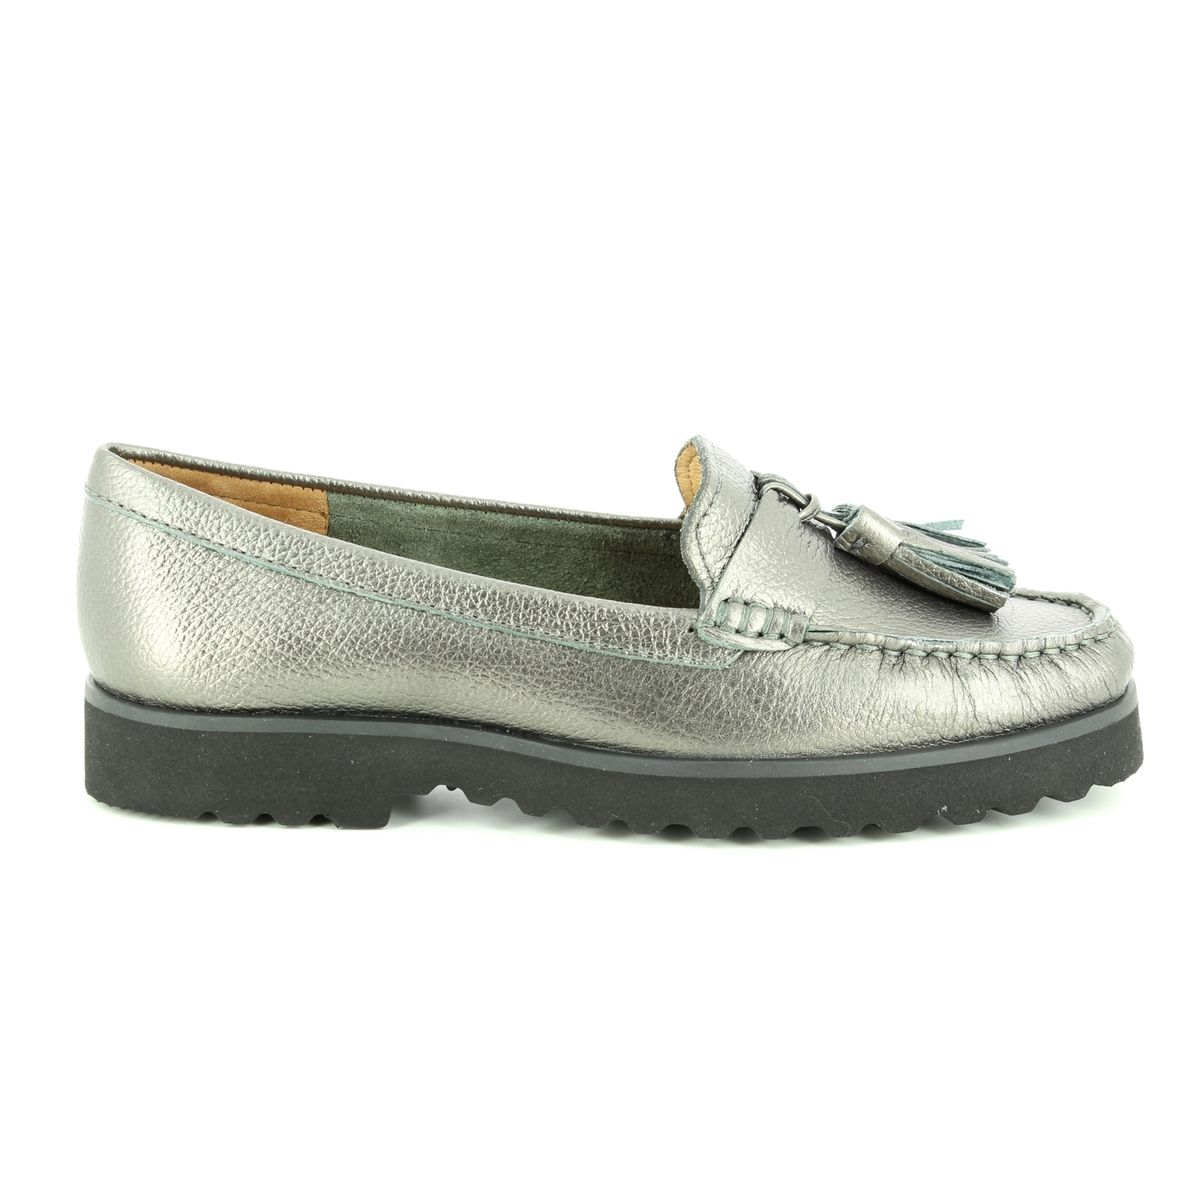 093d9b07112 Ambition Loafers - Pewter - 16628 20 PORSCHE METALIC